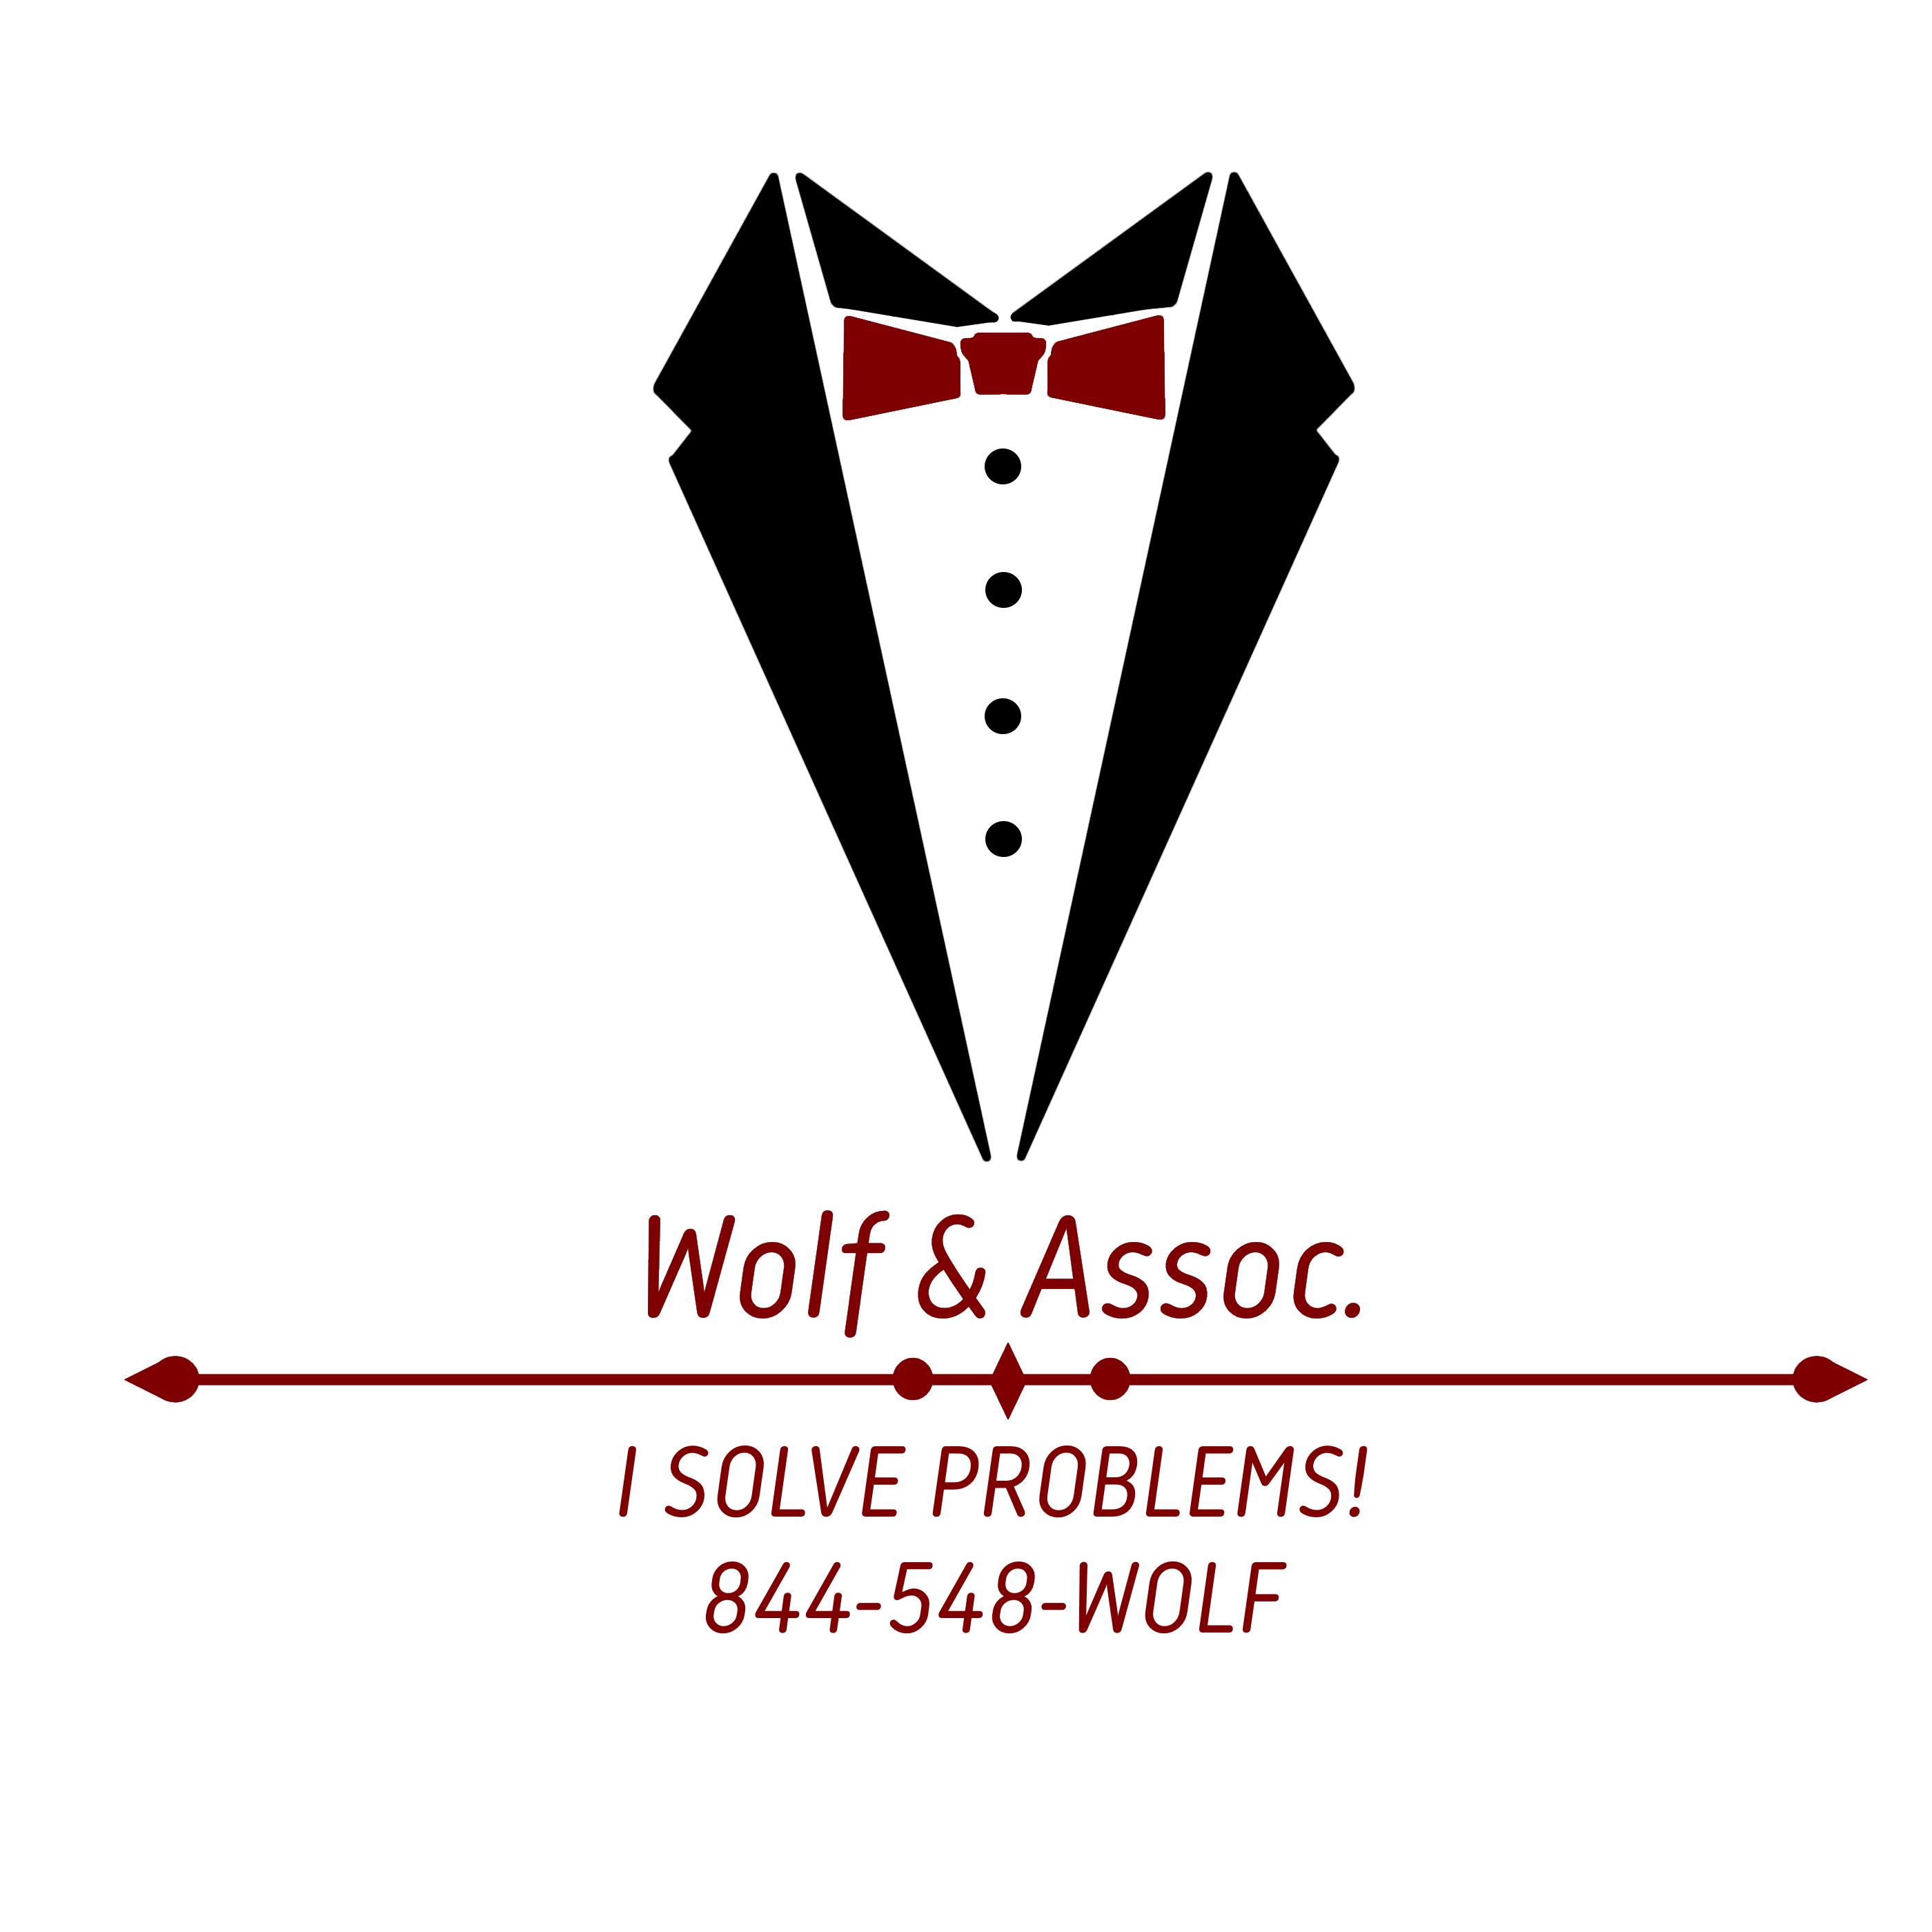 wolf-assoc-logo-2-color-1